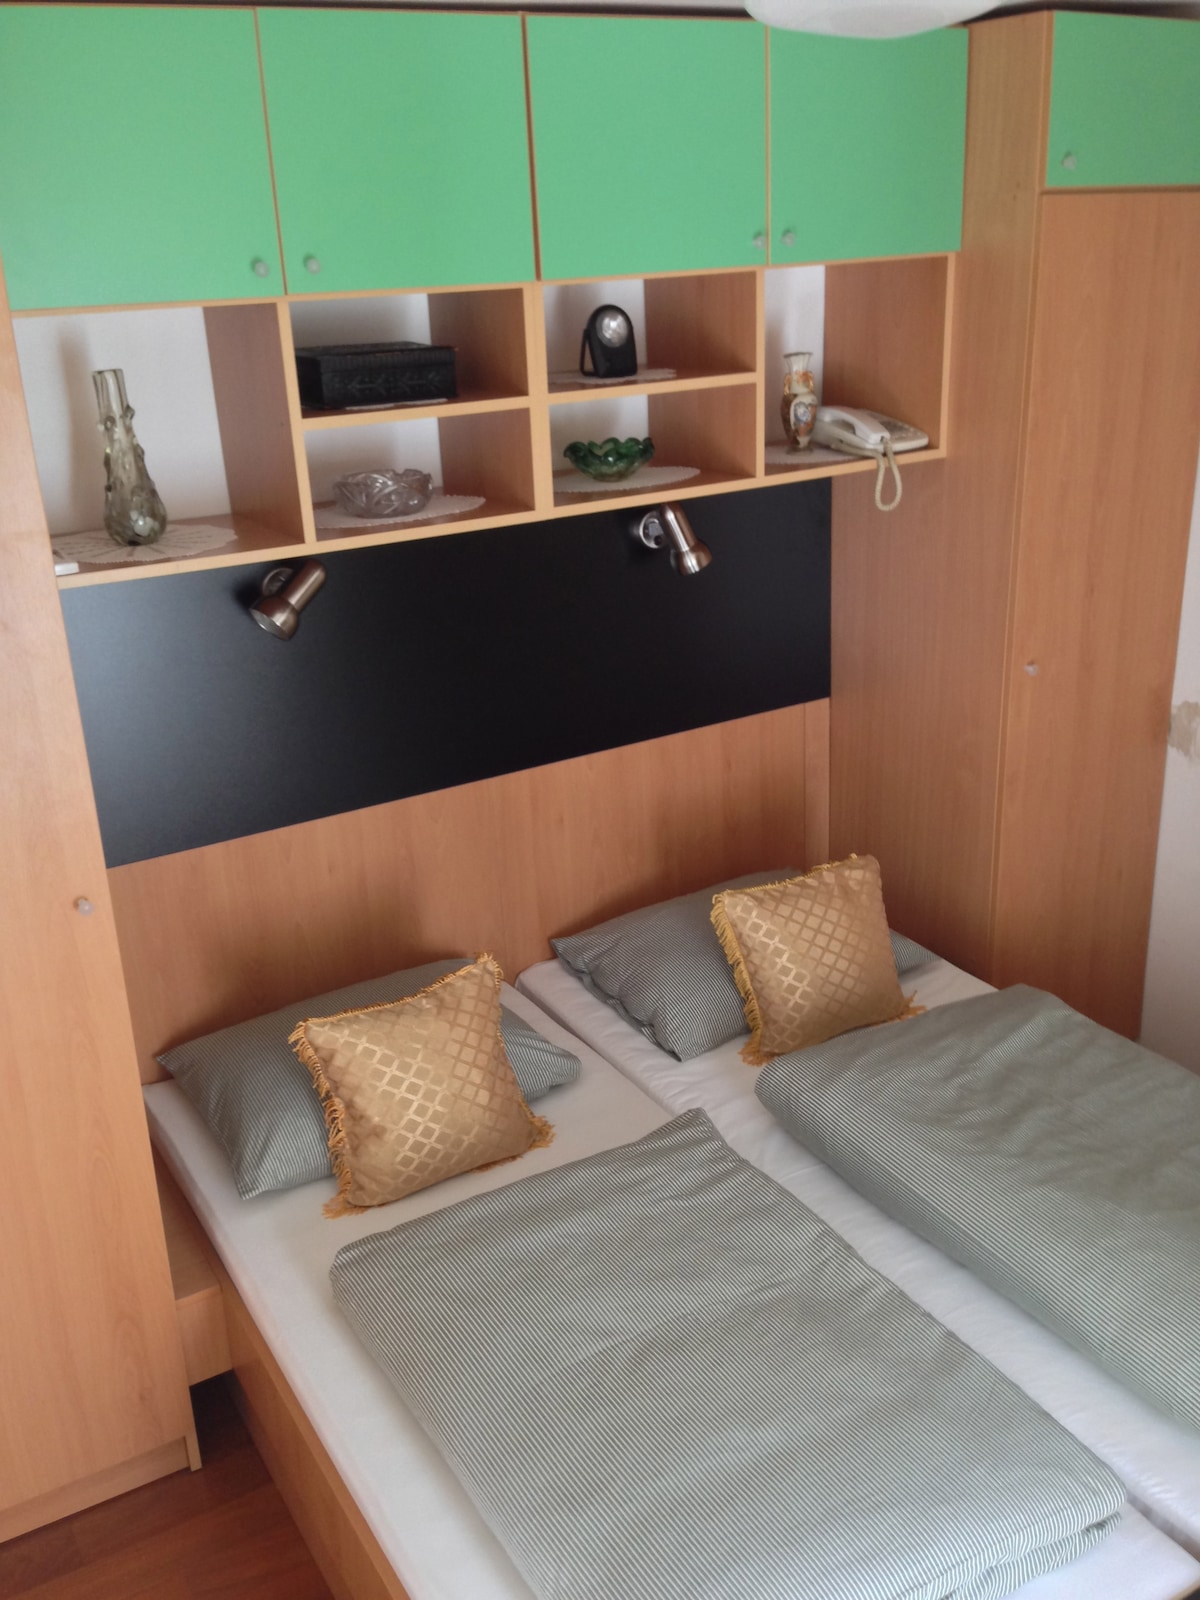 2ppl room - double bed